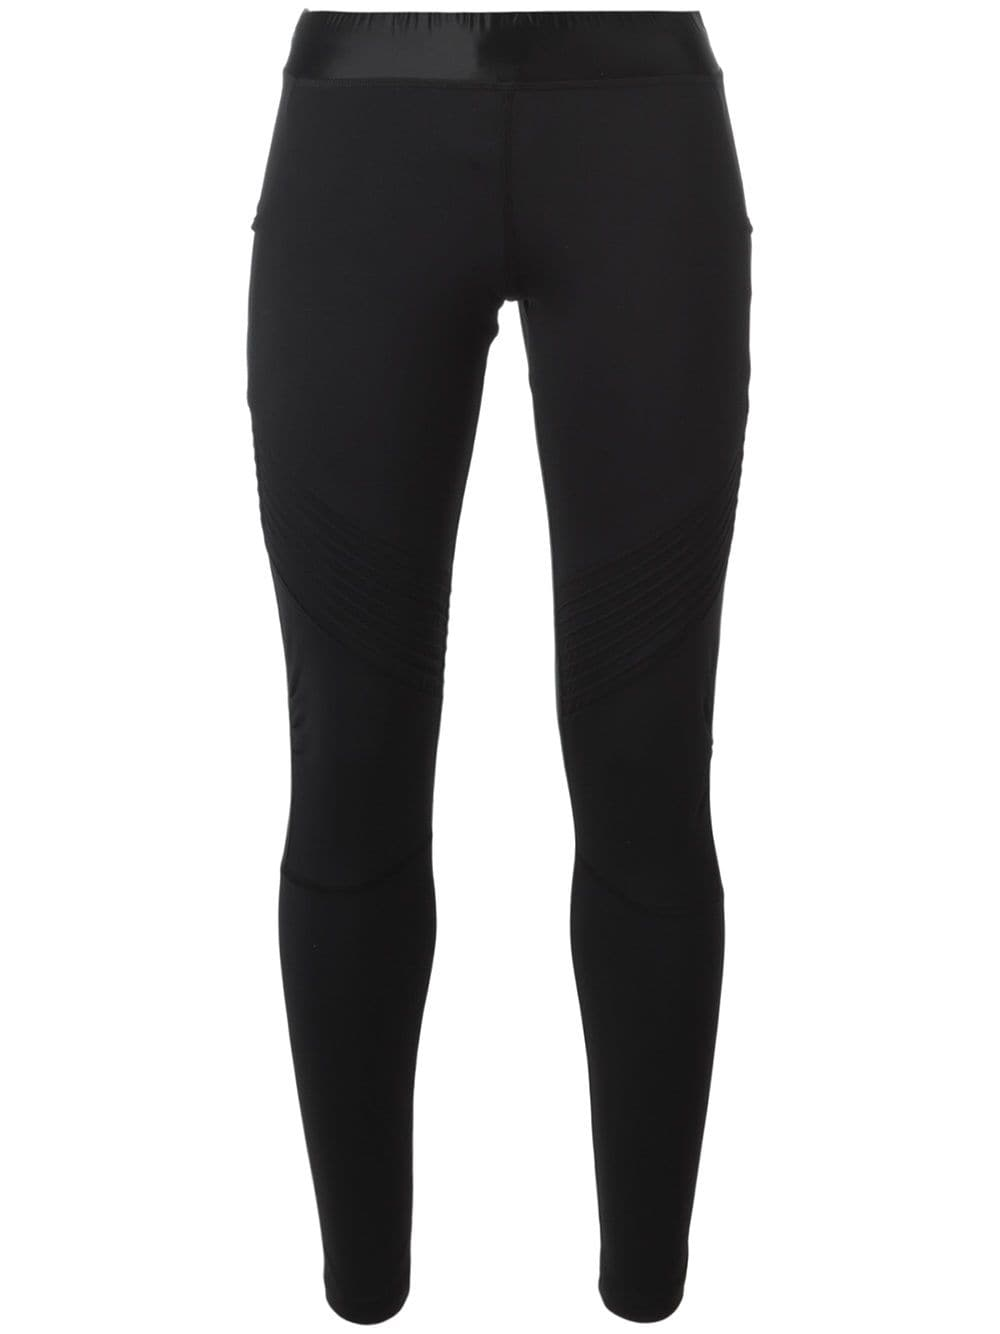 Monreal London sports leggings